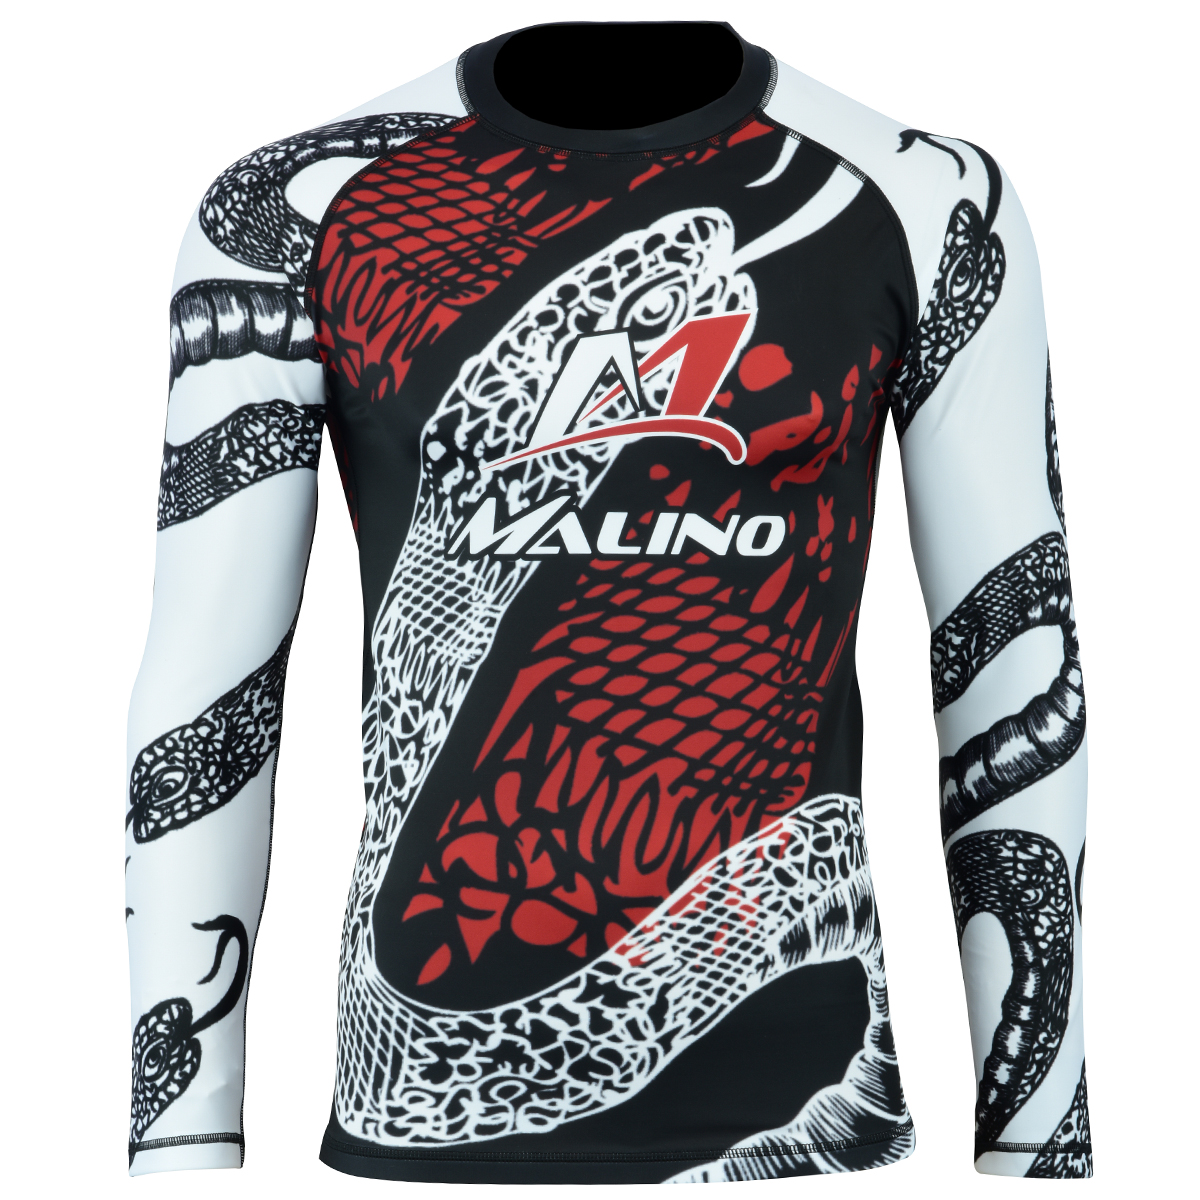 Rash Guard Shirt Unisex Black-White-Red